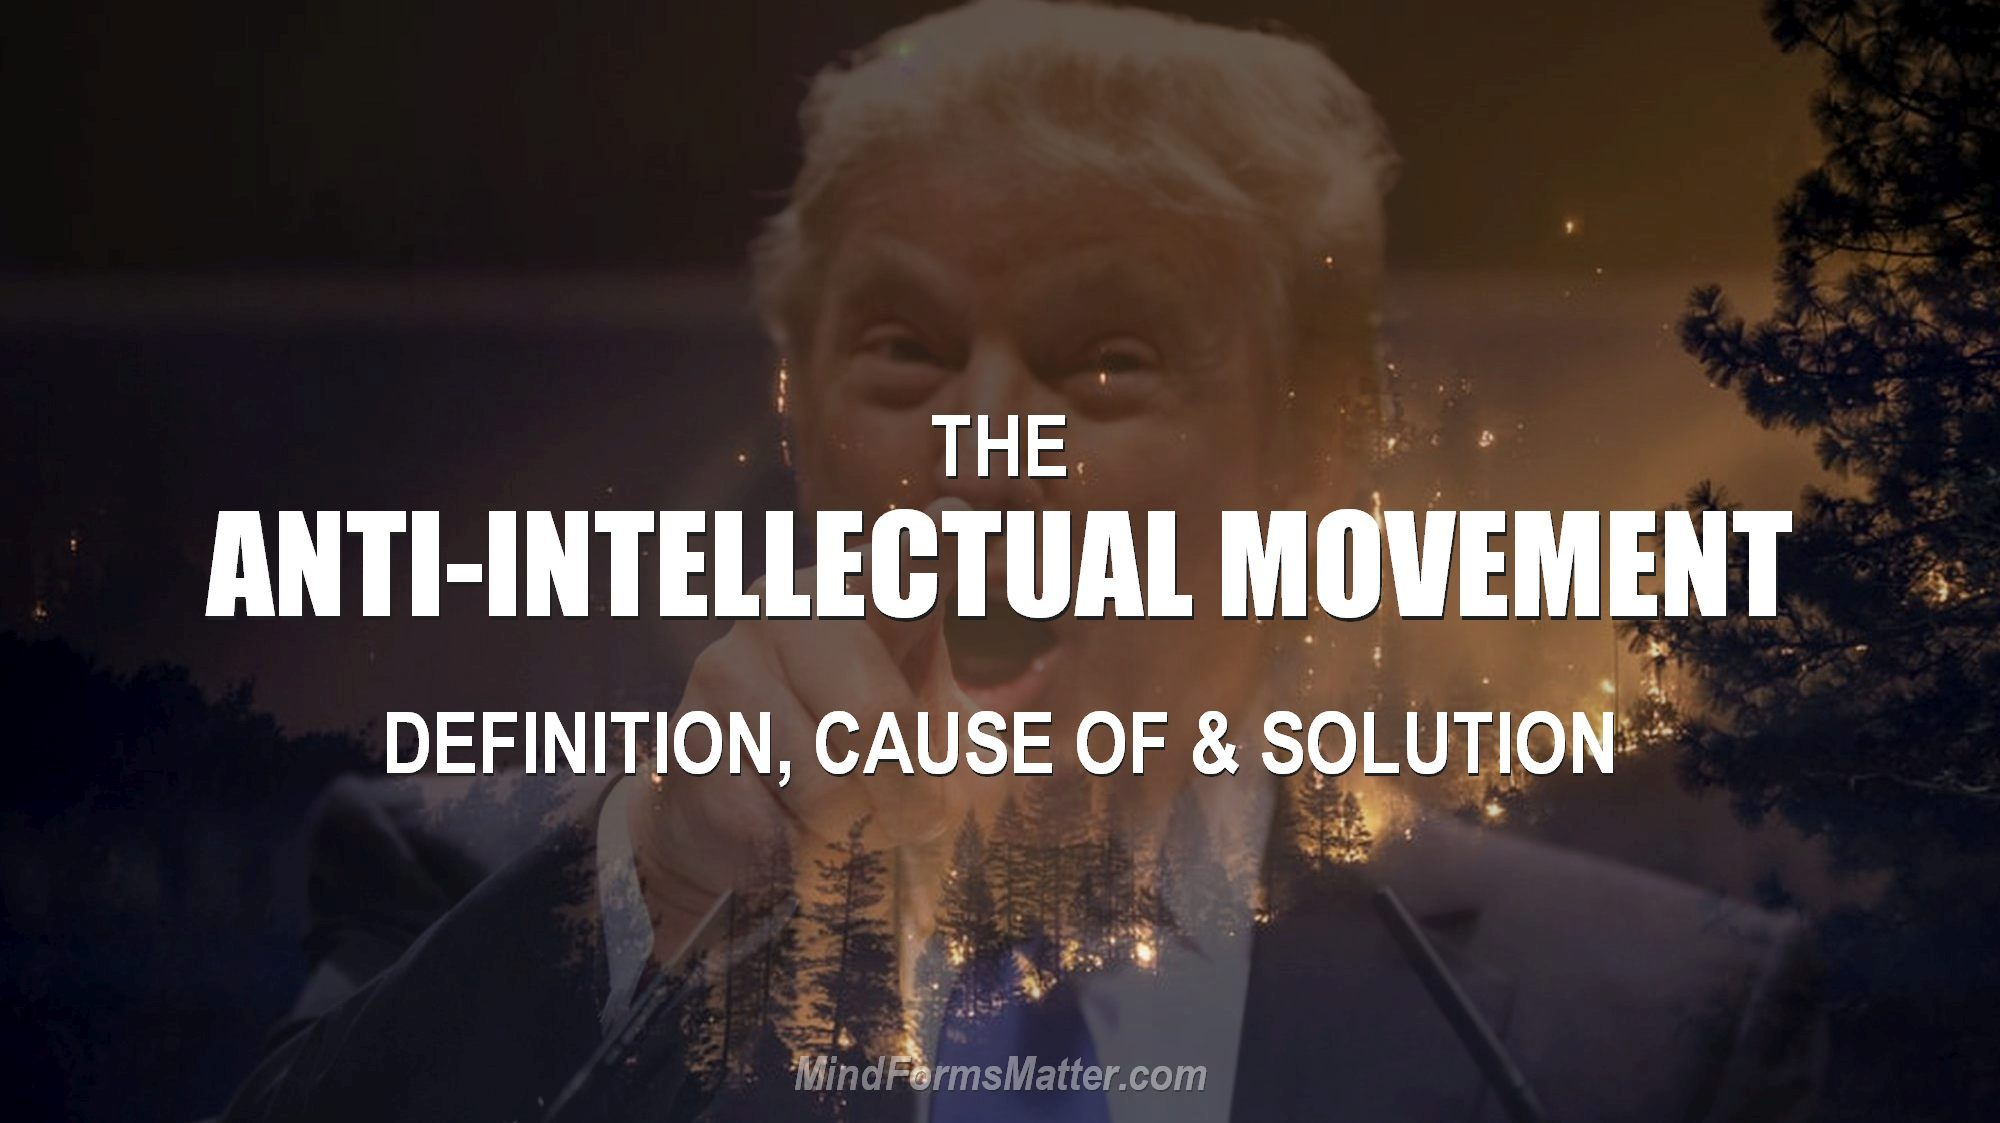 Look at Trump to see what the anti-intellectual movement definition. Learn the cause and the solution here.